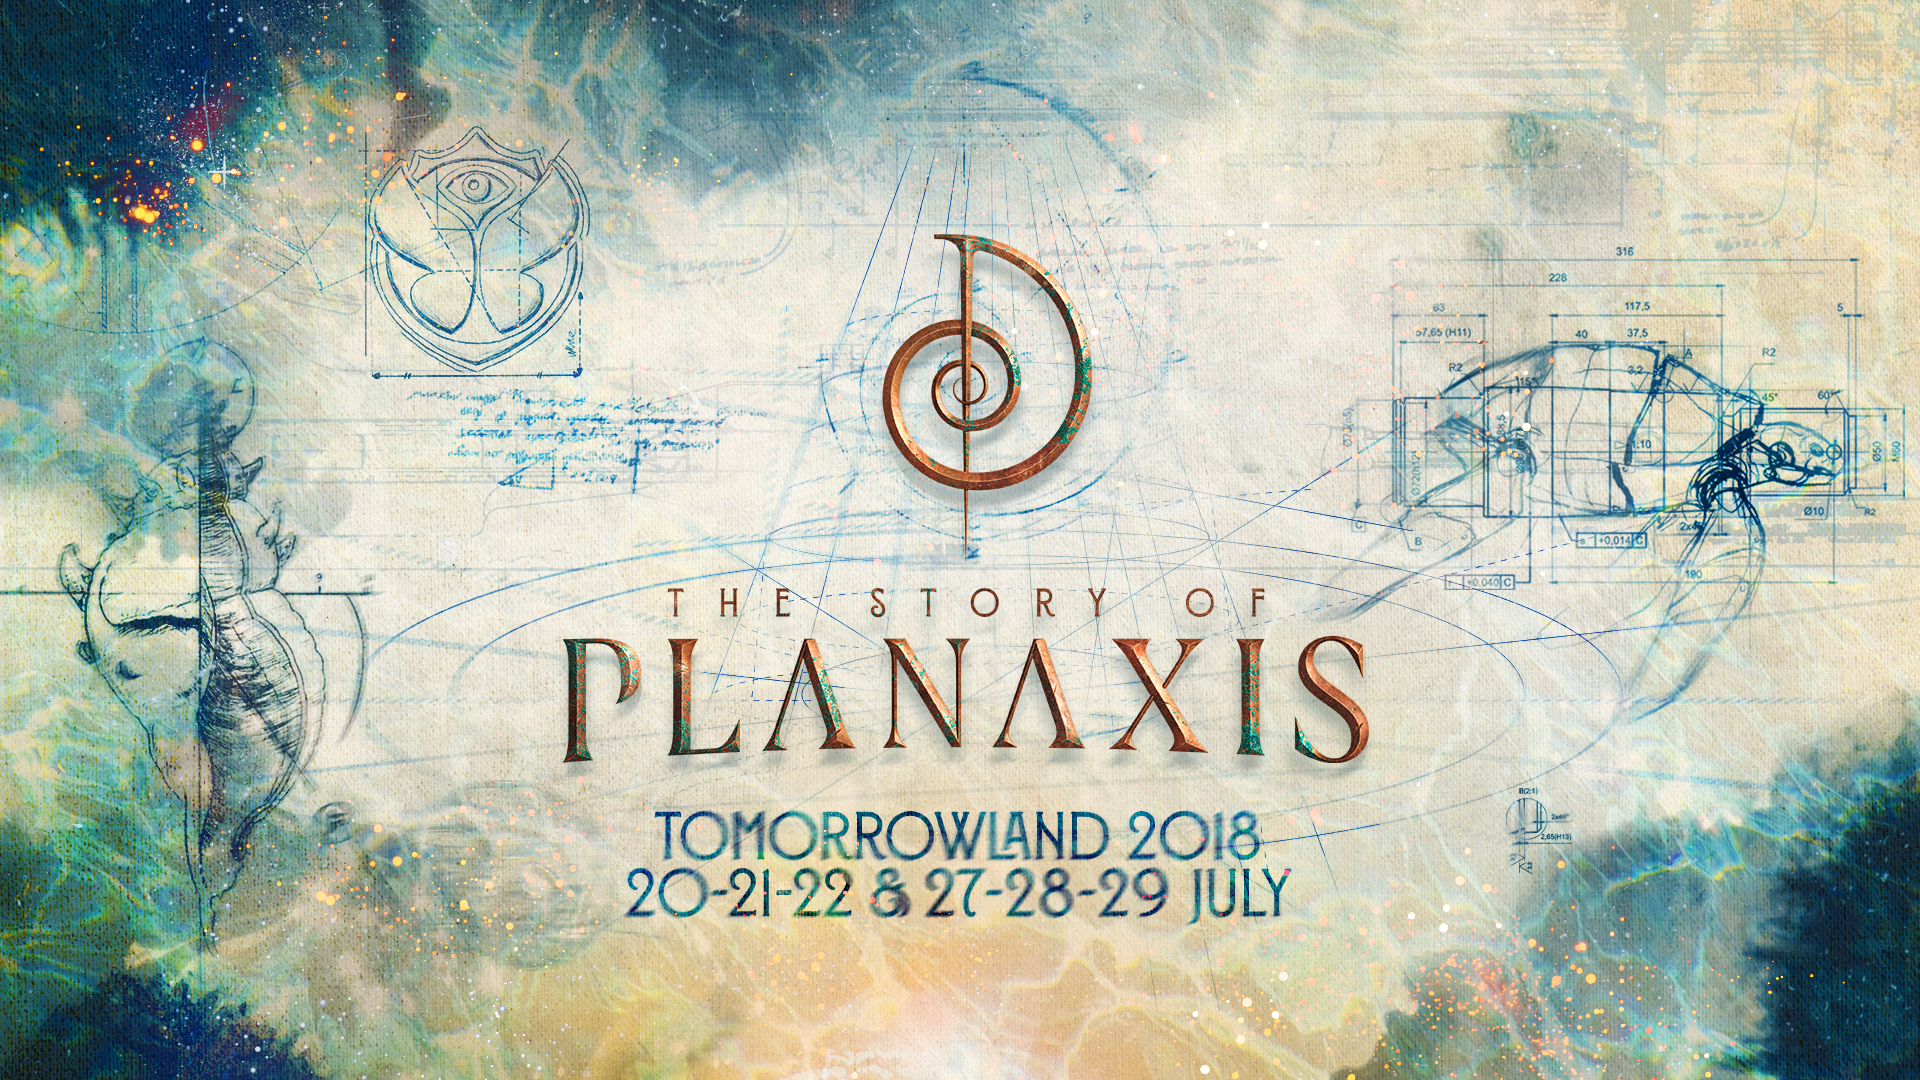 Tomorrowland announces theme for 2018